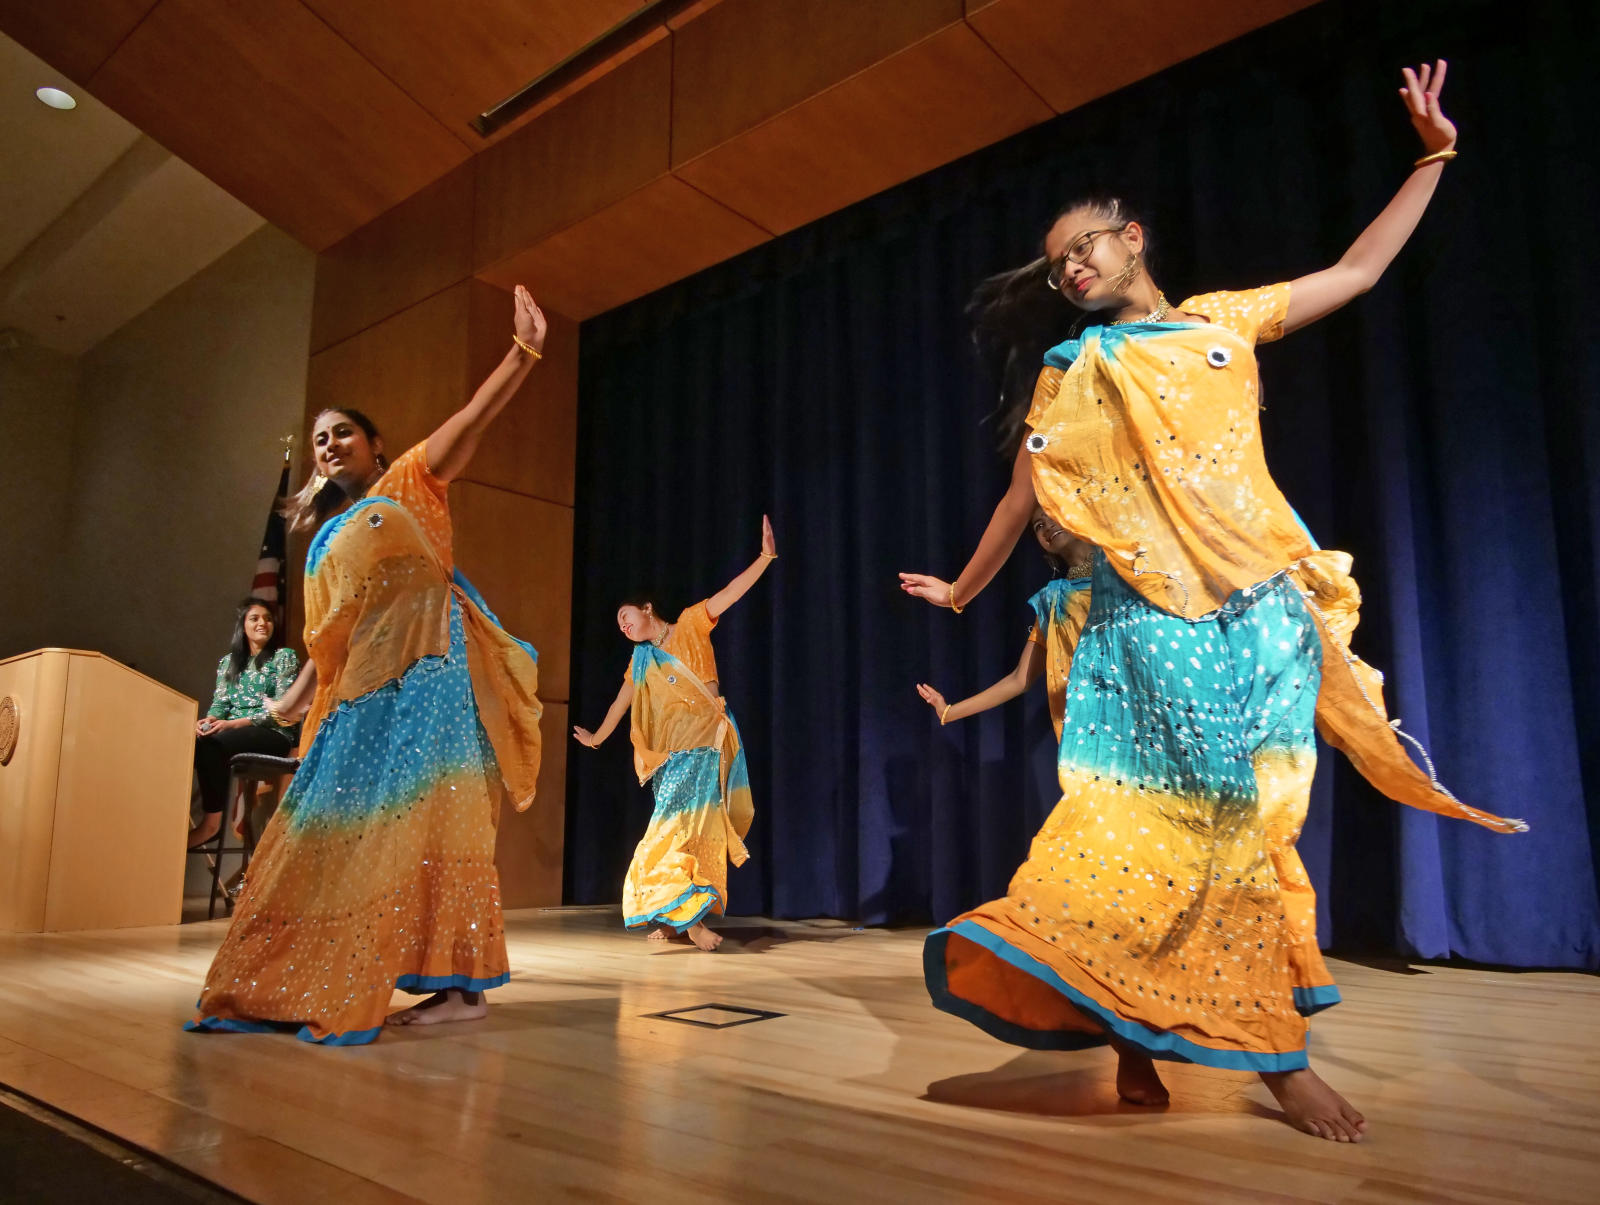 Dancers performs during the CU Live! Student Performances session at the 2018 Diversity and Inclusion Summit in the UMC at the University of Colorado Boulder. (Photo by Casey A. Cass/University of Colorado)